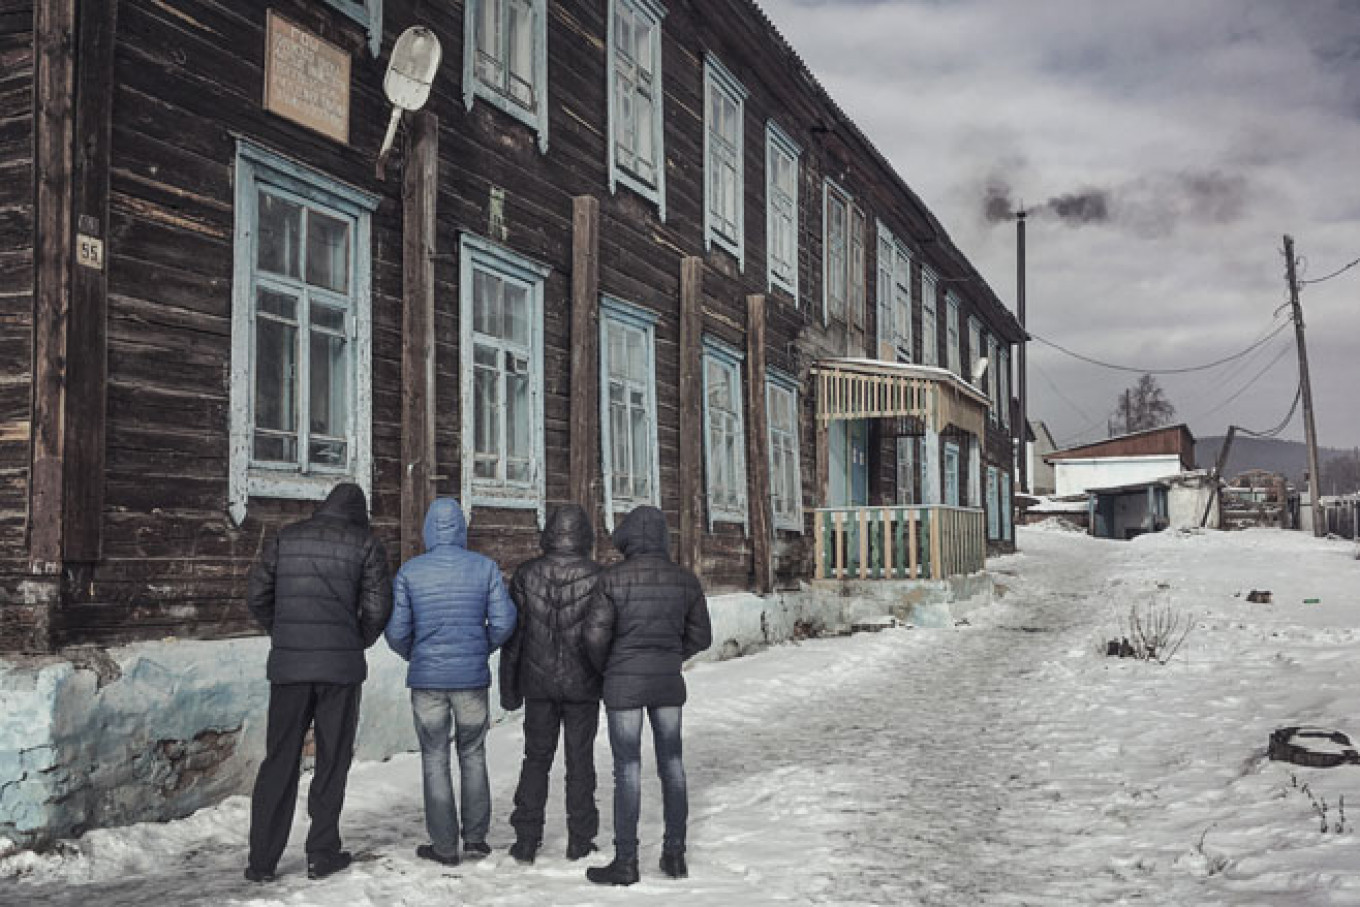 Oliver Carroll reported on the criminal gangs targeting schools in deep Siberia 				 				Dmitry Markov